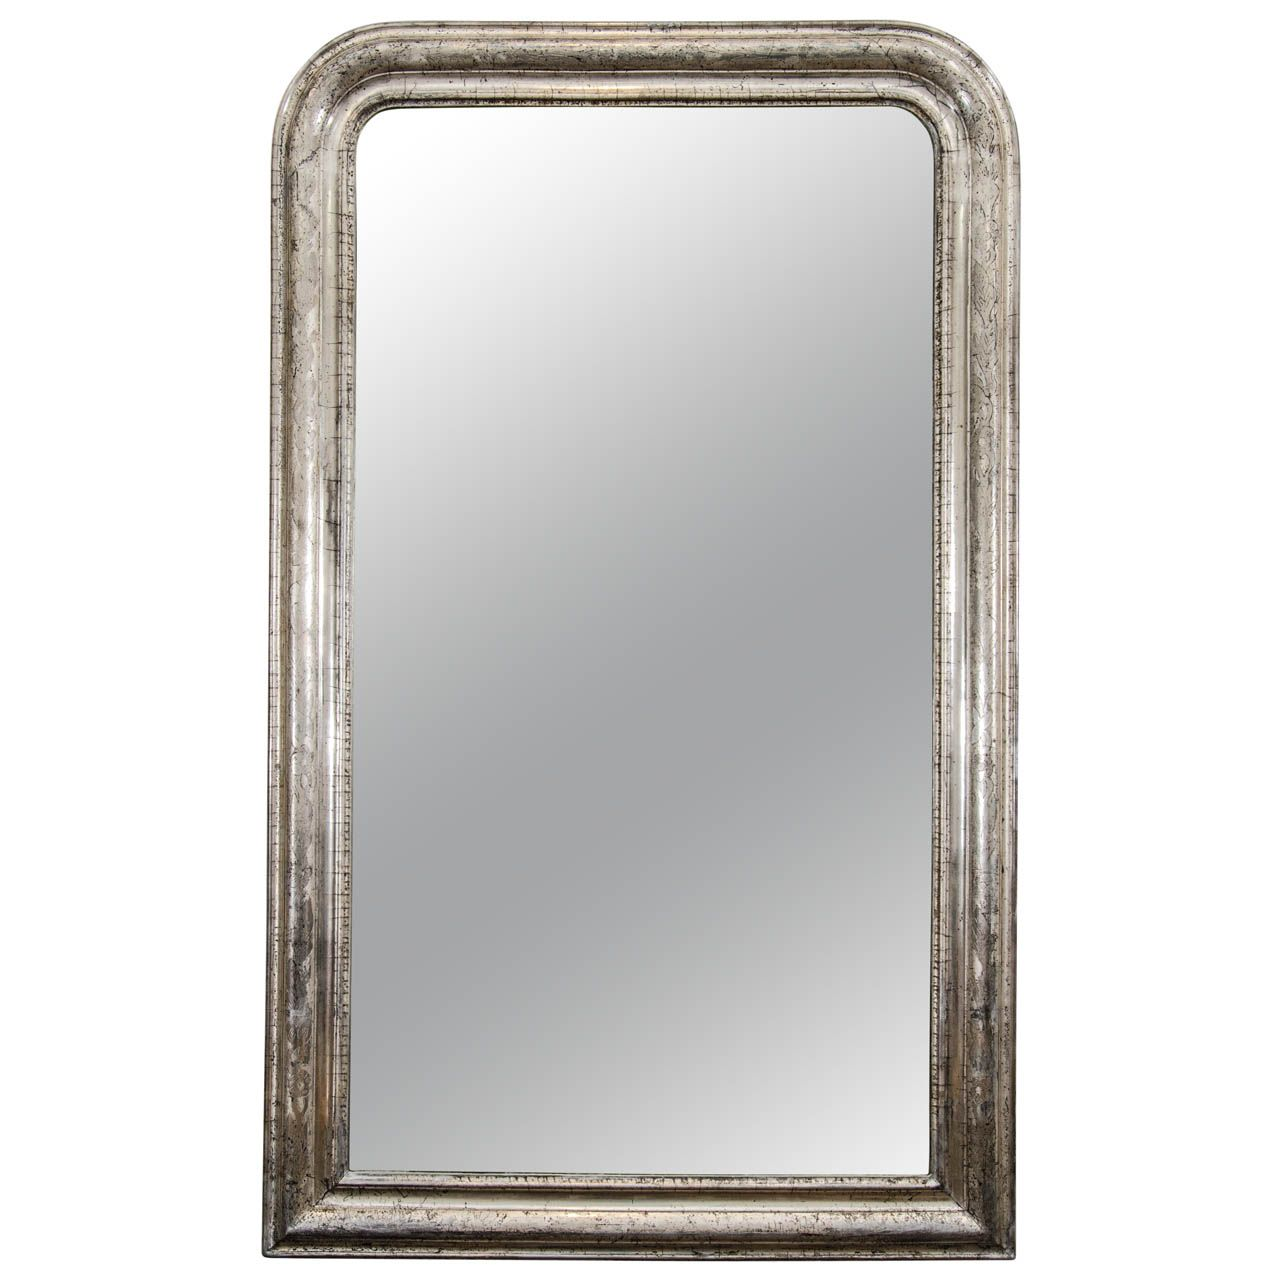 A Tall Louis Philippe Silvered Mirror | From a unique collection of antique and modern wall mirrors at http://www.1stdibs.com/furniture/mirrors/wall-mirrors/